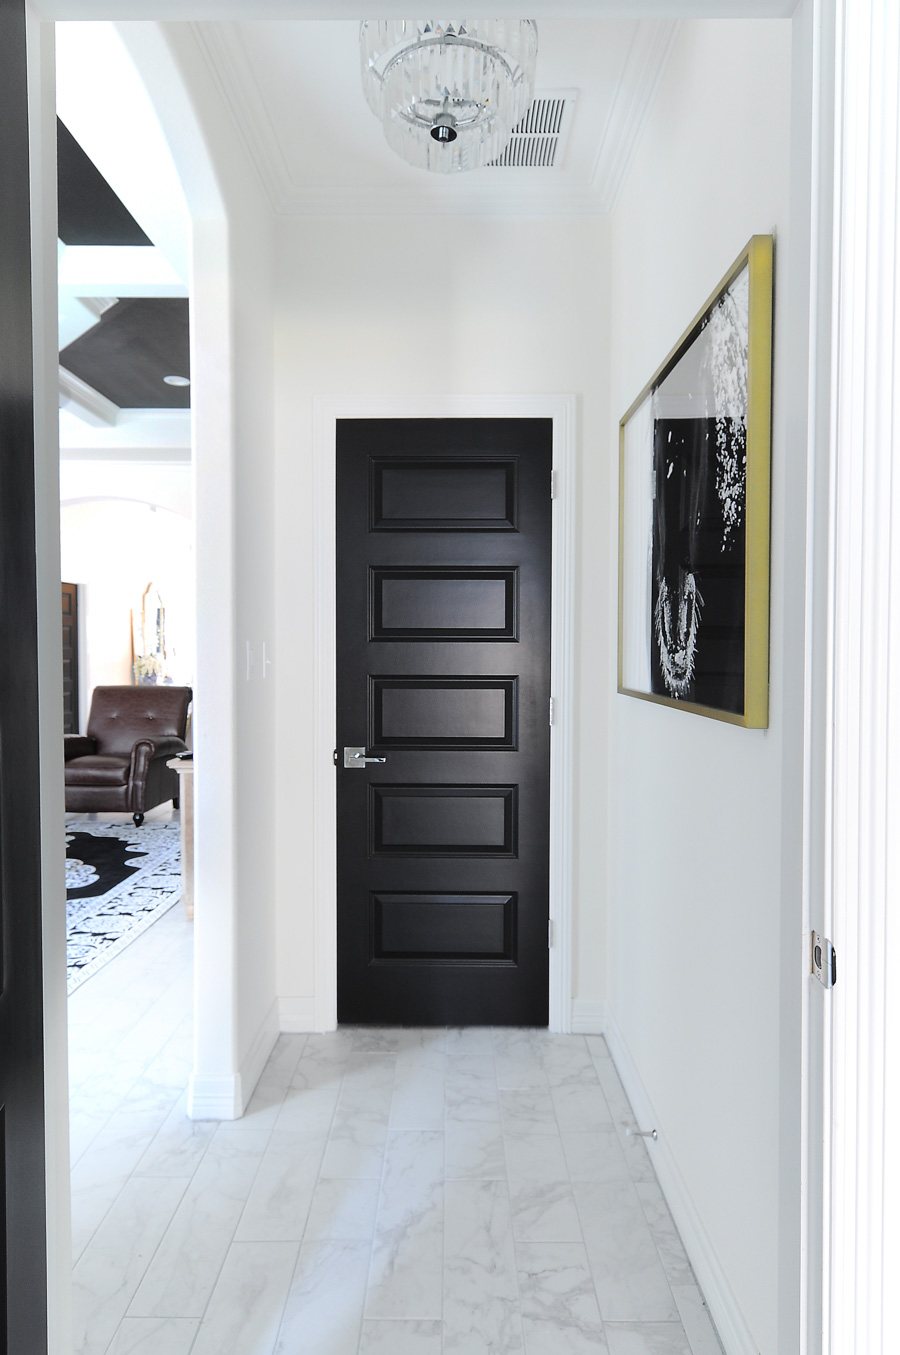 Black interior doors make a bold statement against white walls in this modern home with traditional : black interior doors - zebratimes.com